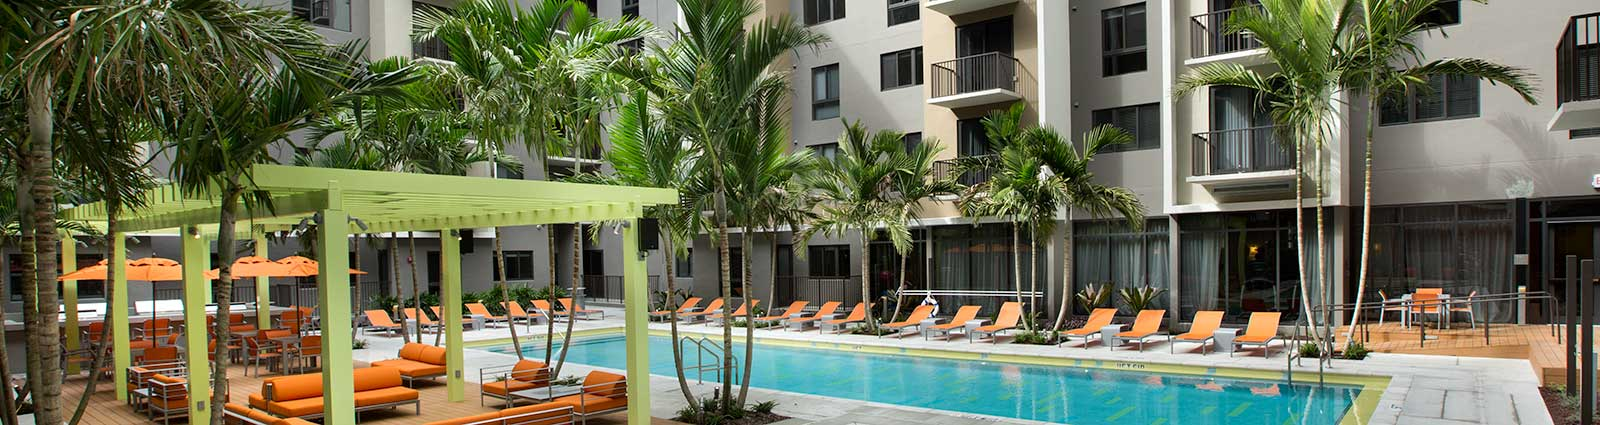 Schedule a tour to view our apartments in Miami, FL